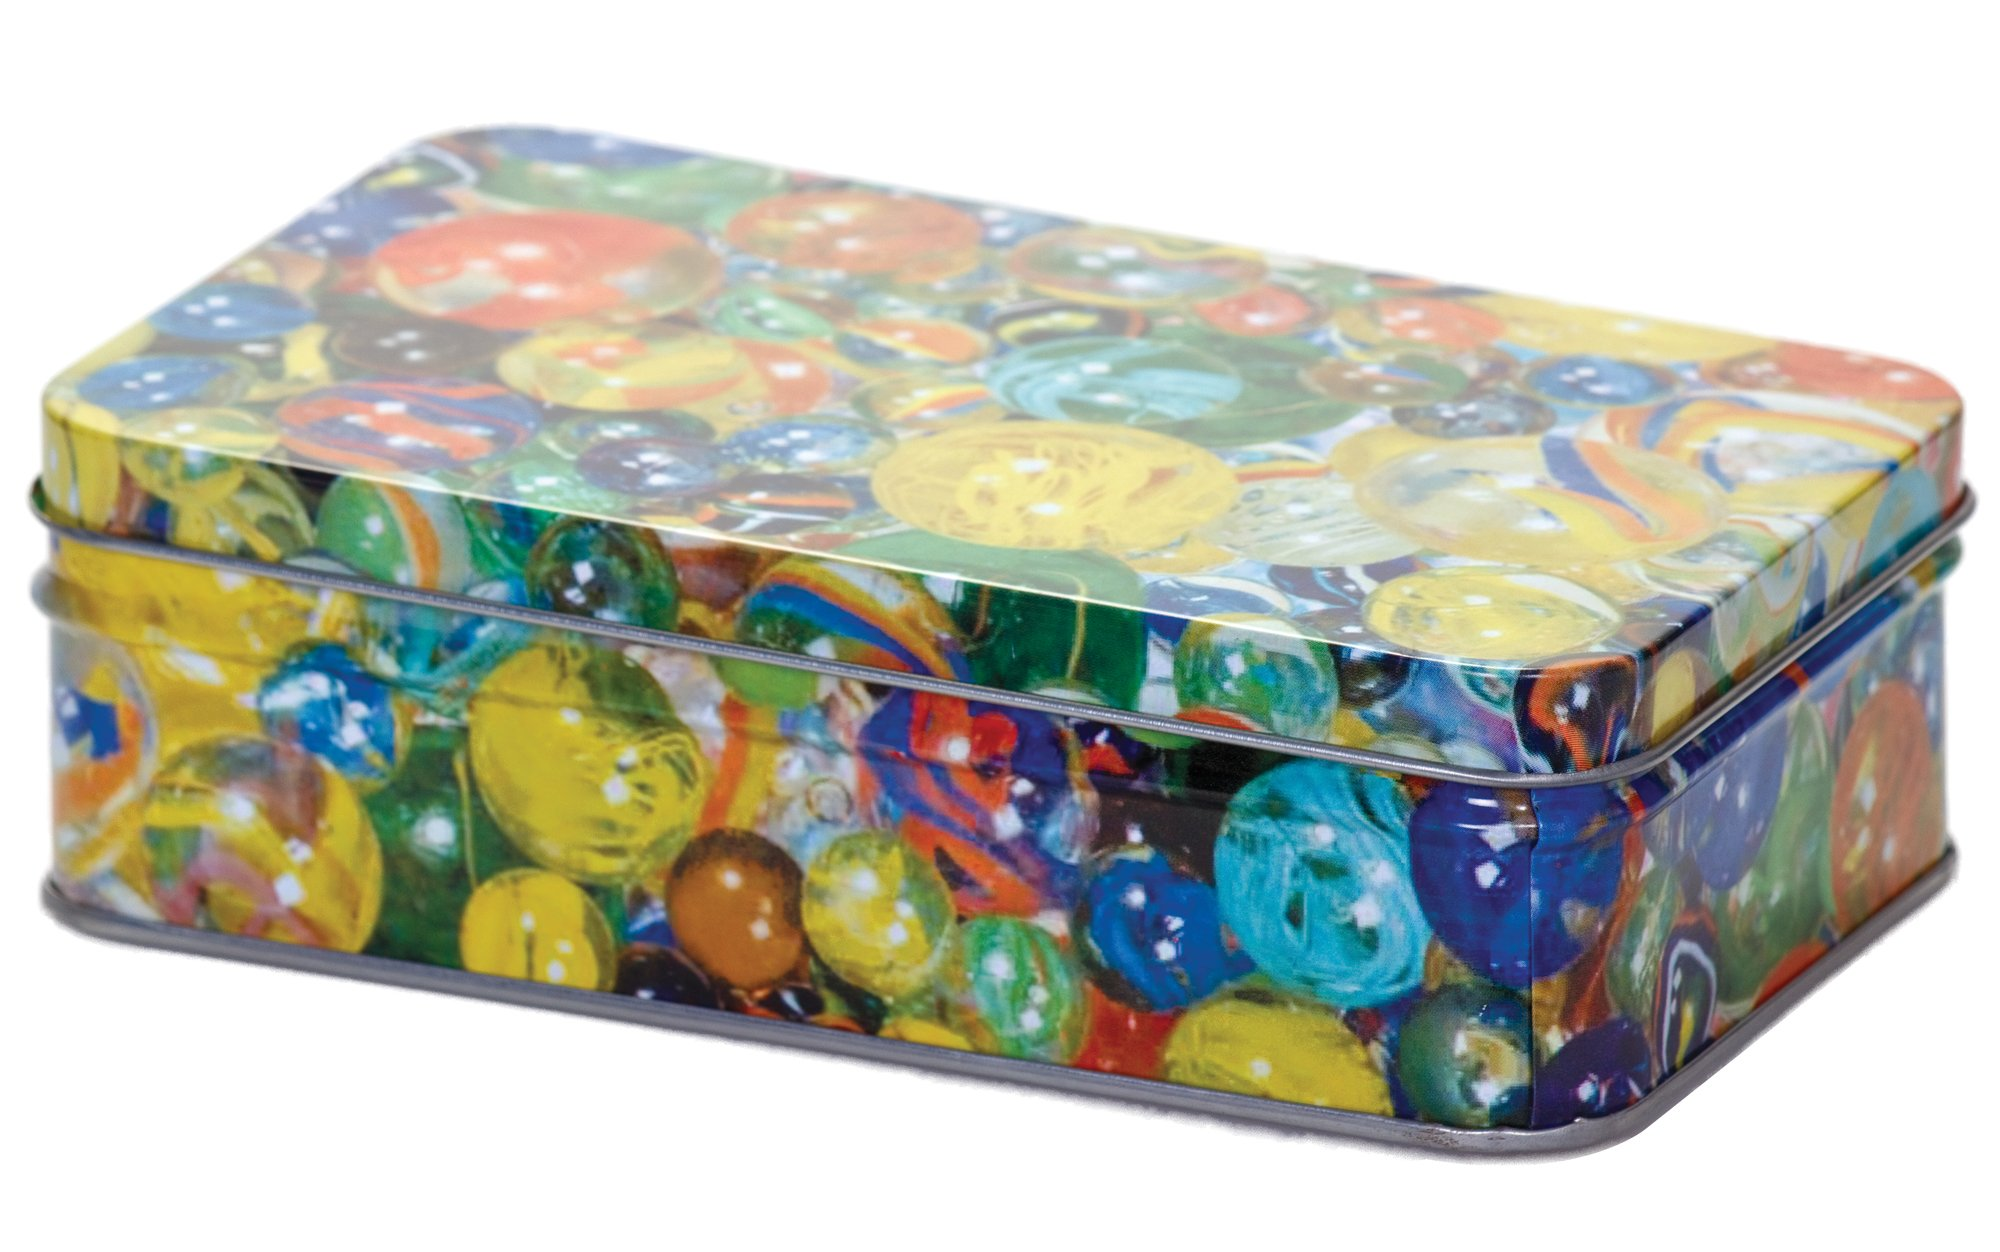 60 Traditional Marbles In A Tin